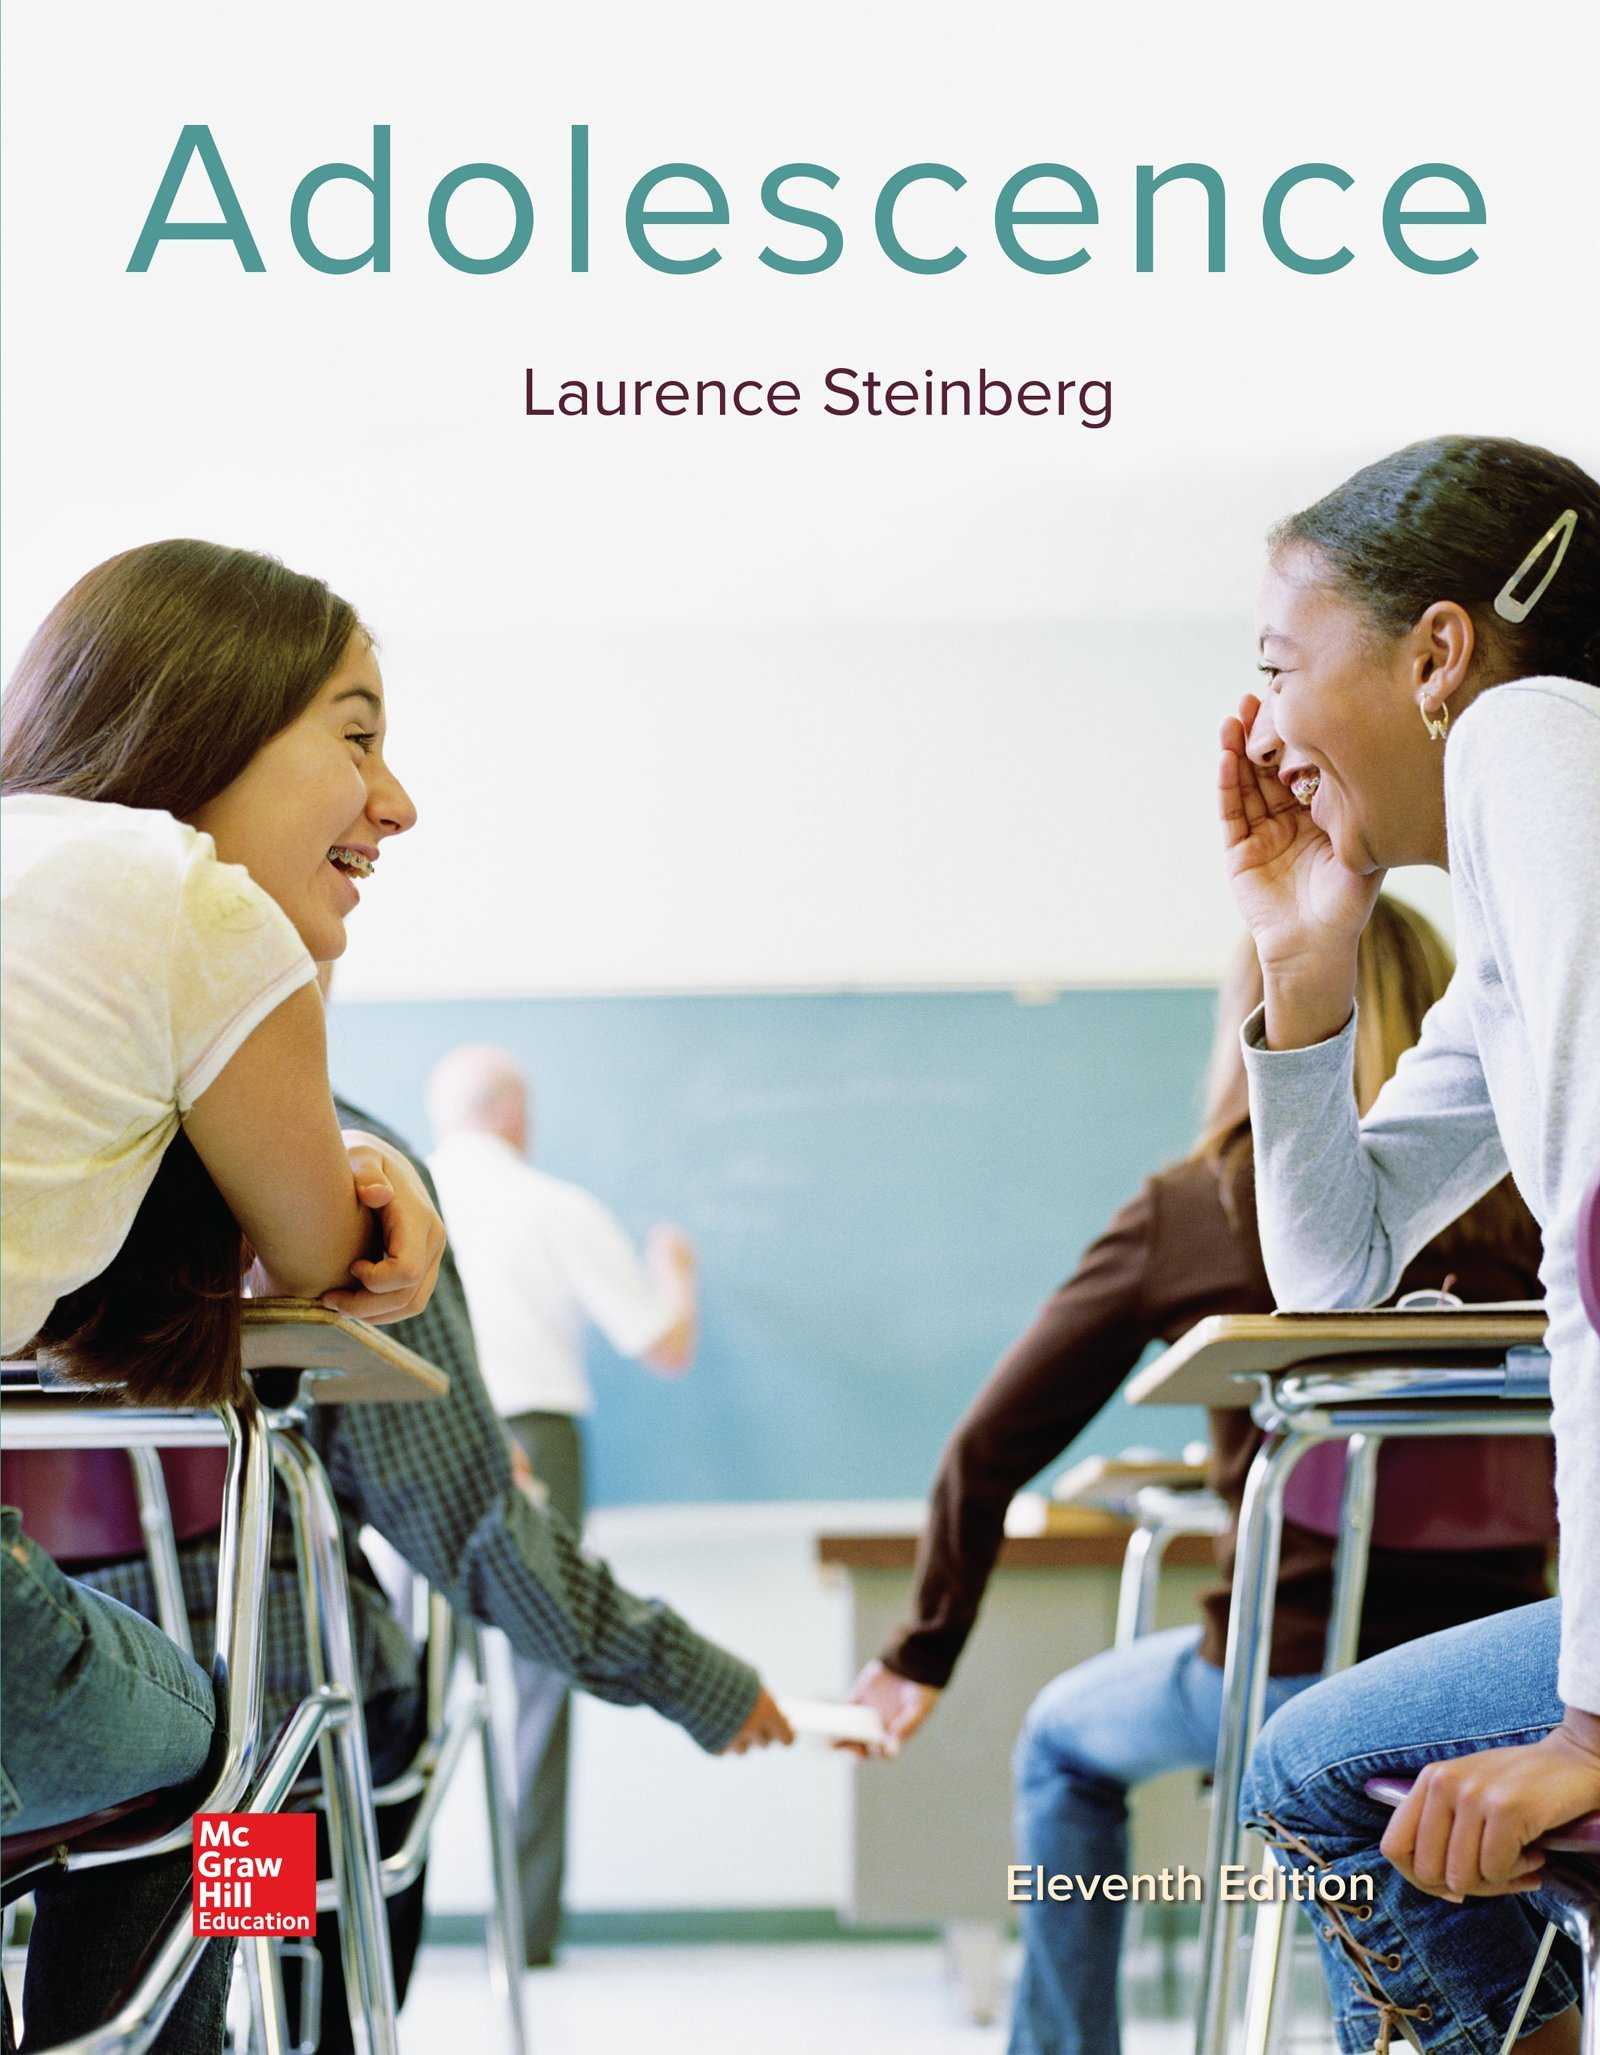 Adolescence by McGraw-Hill Education